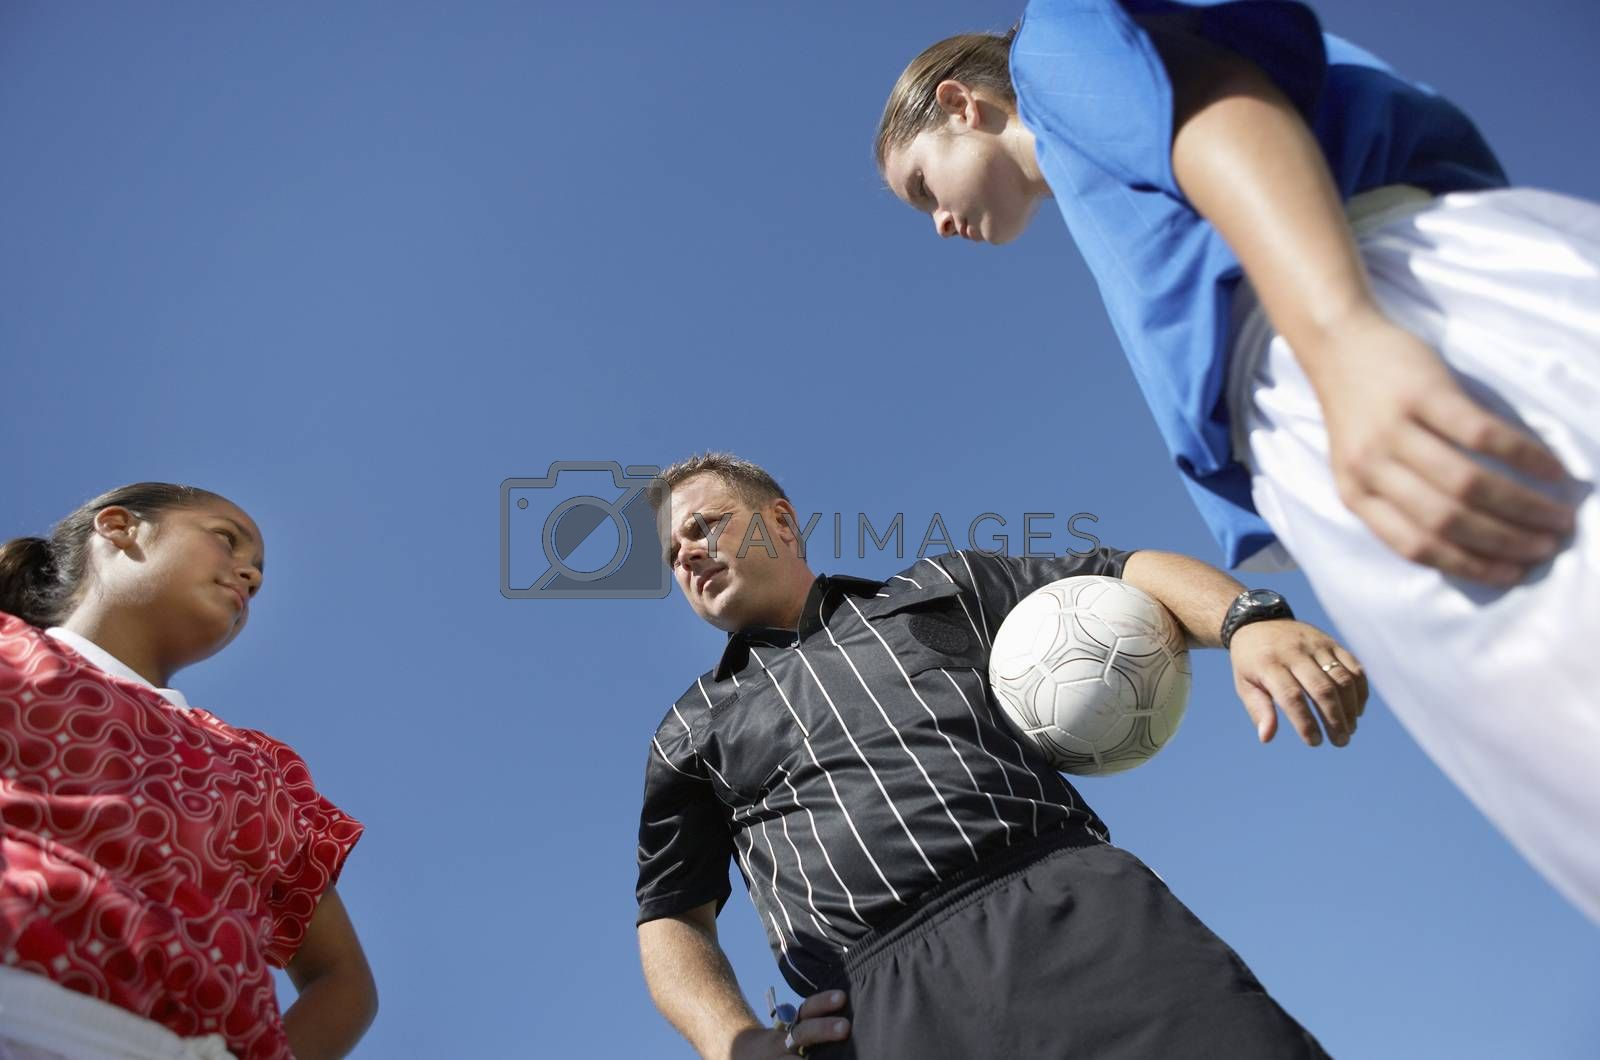 Rival Female Players In Front Of Soccer Referee